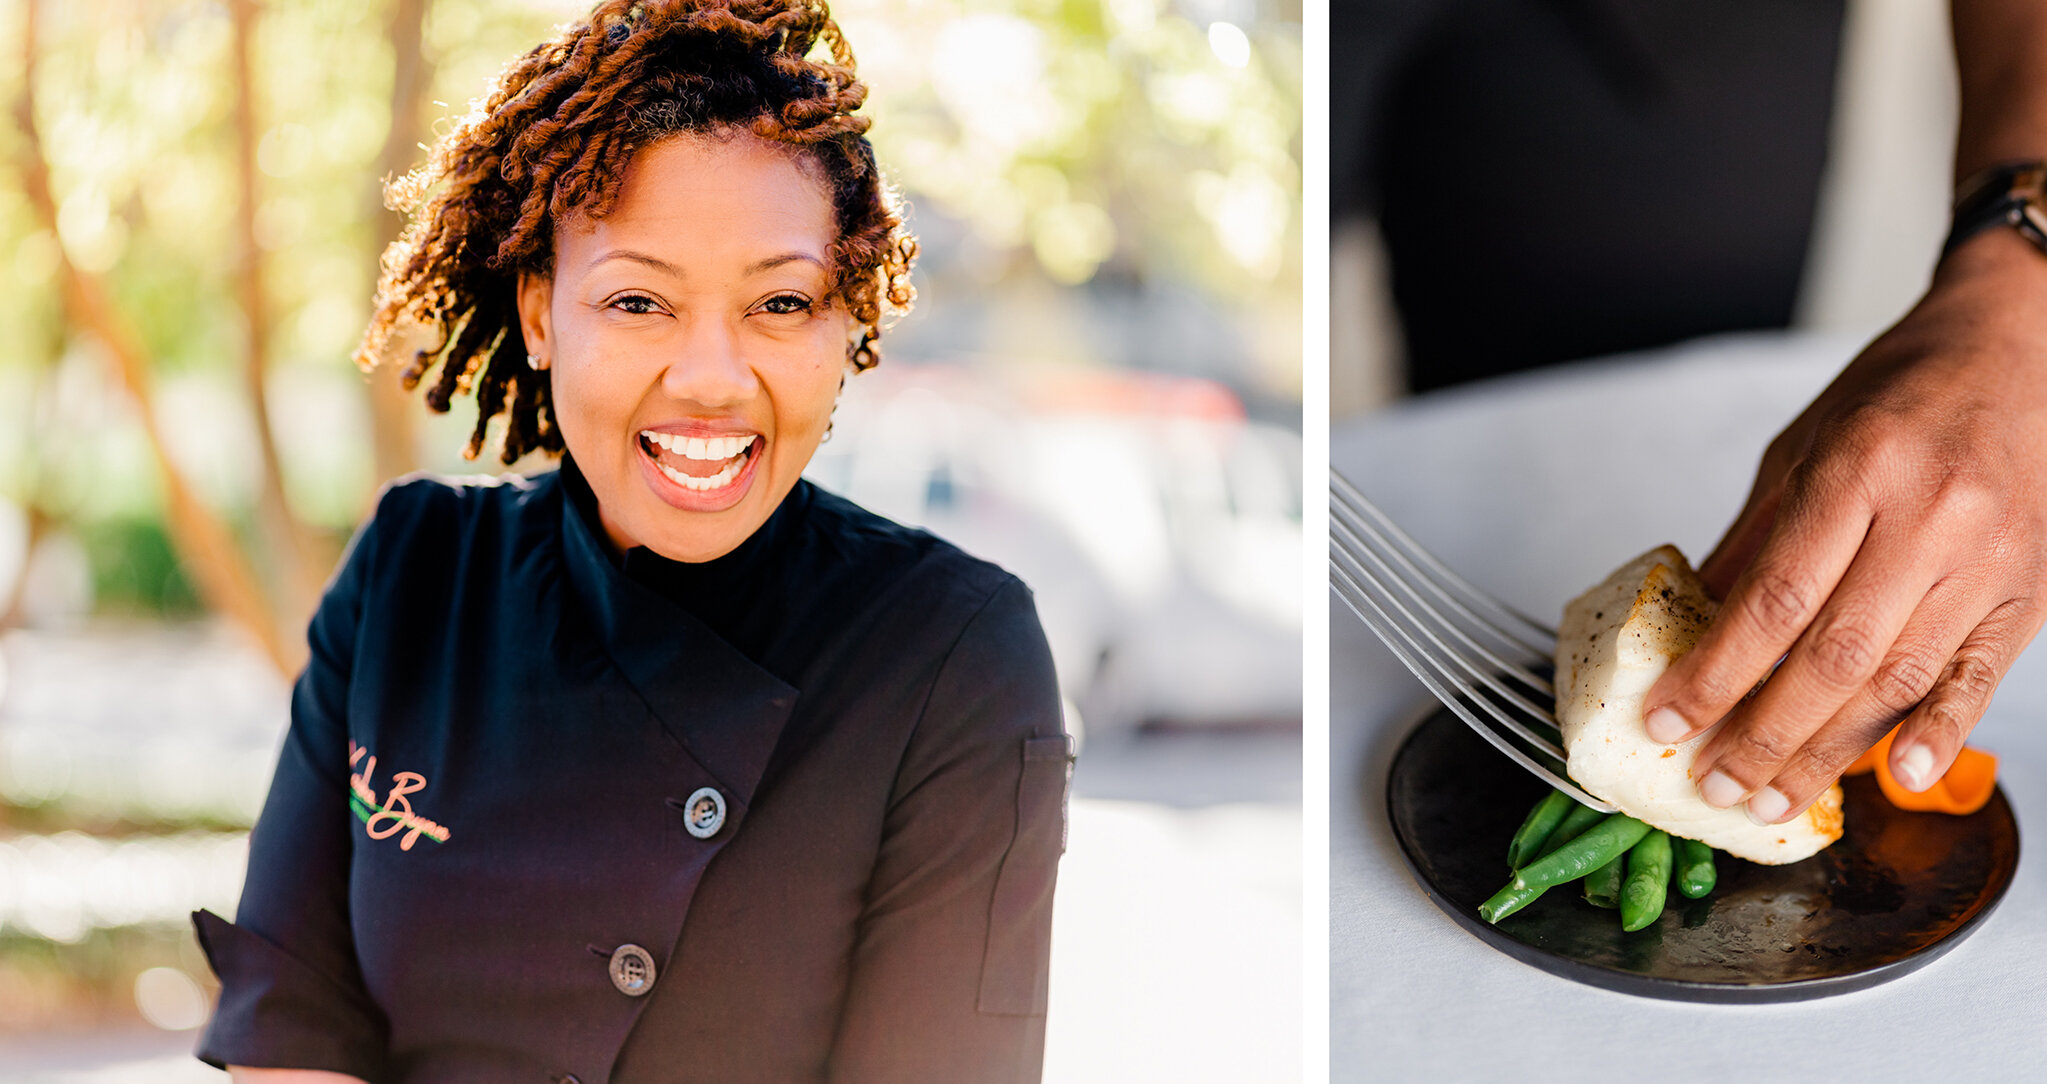 personalized branding photography of chefs and culinary professions, including behind the scenes, plating, and headshots for your company